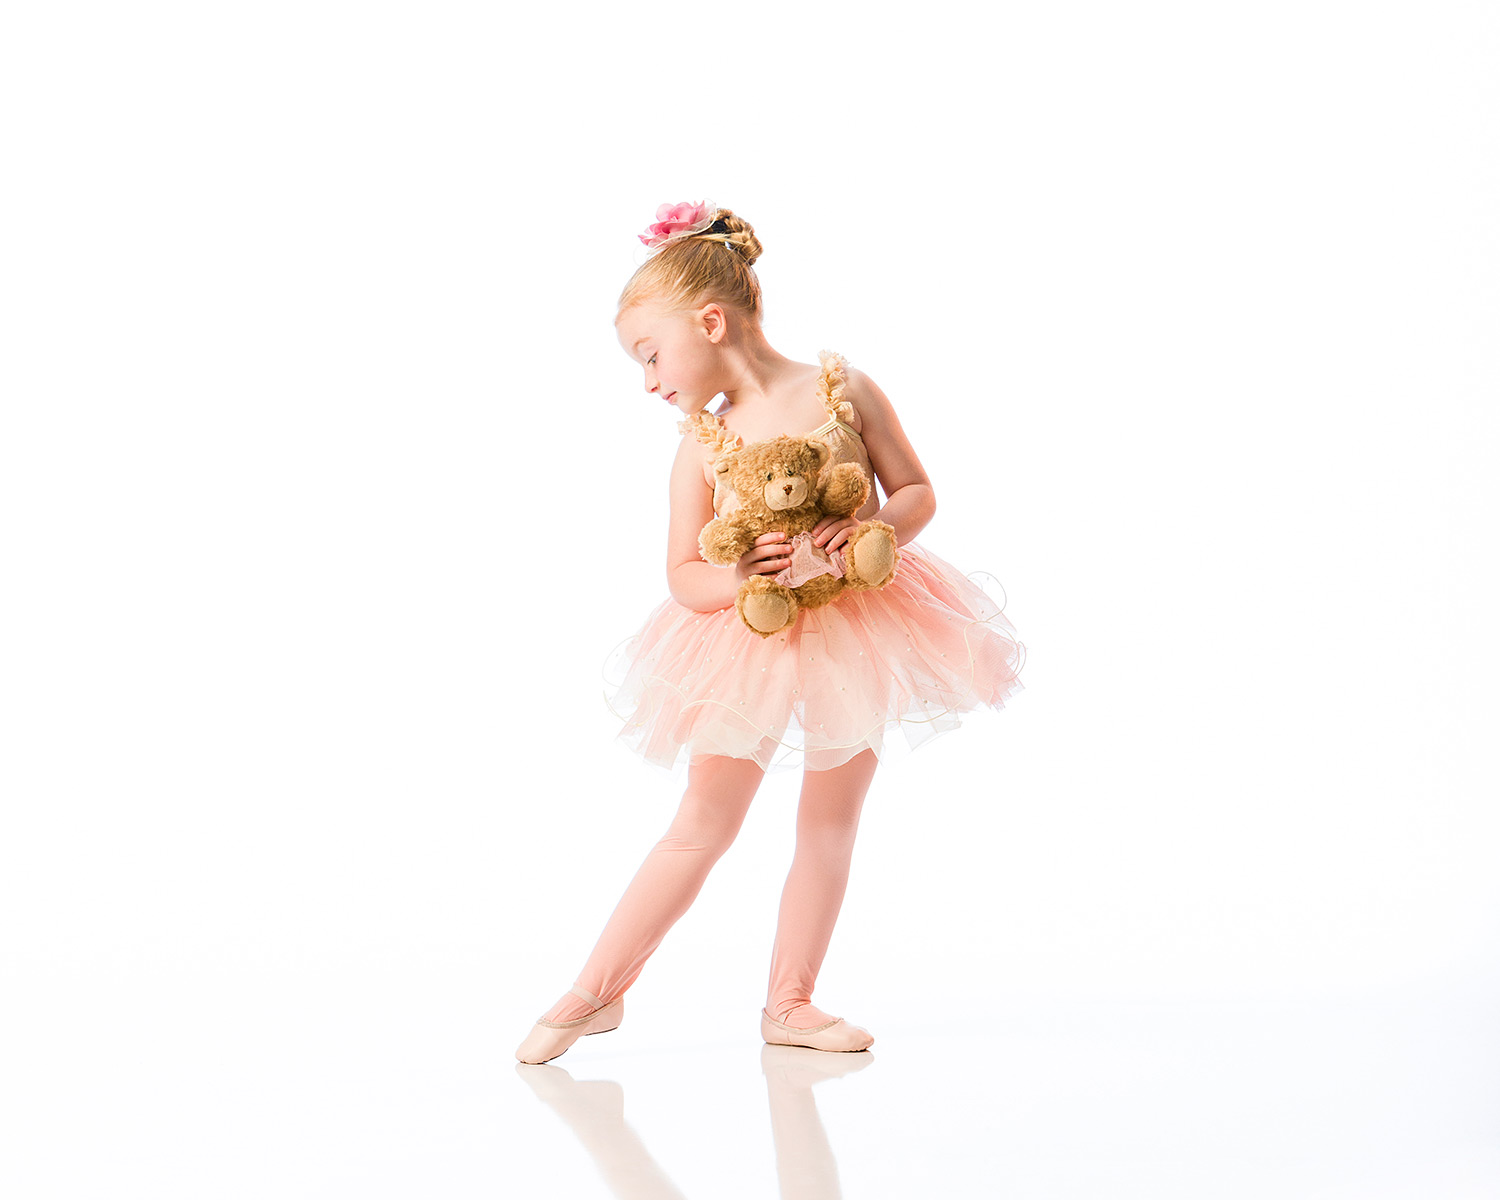 A young ballerina in a tutu points her toe. Sharon Davis School of Dance is now offering online/virtual dance classes.